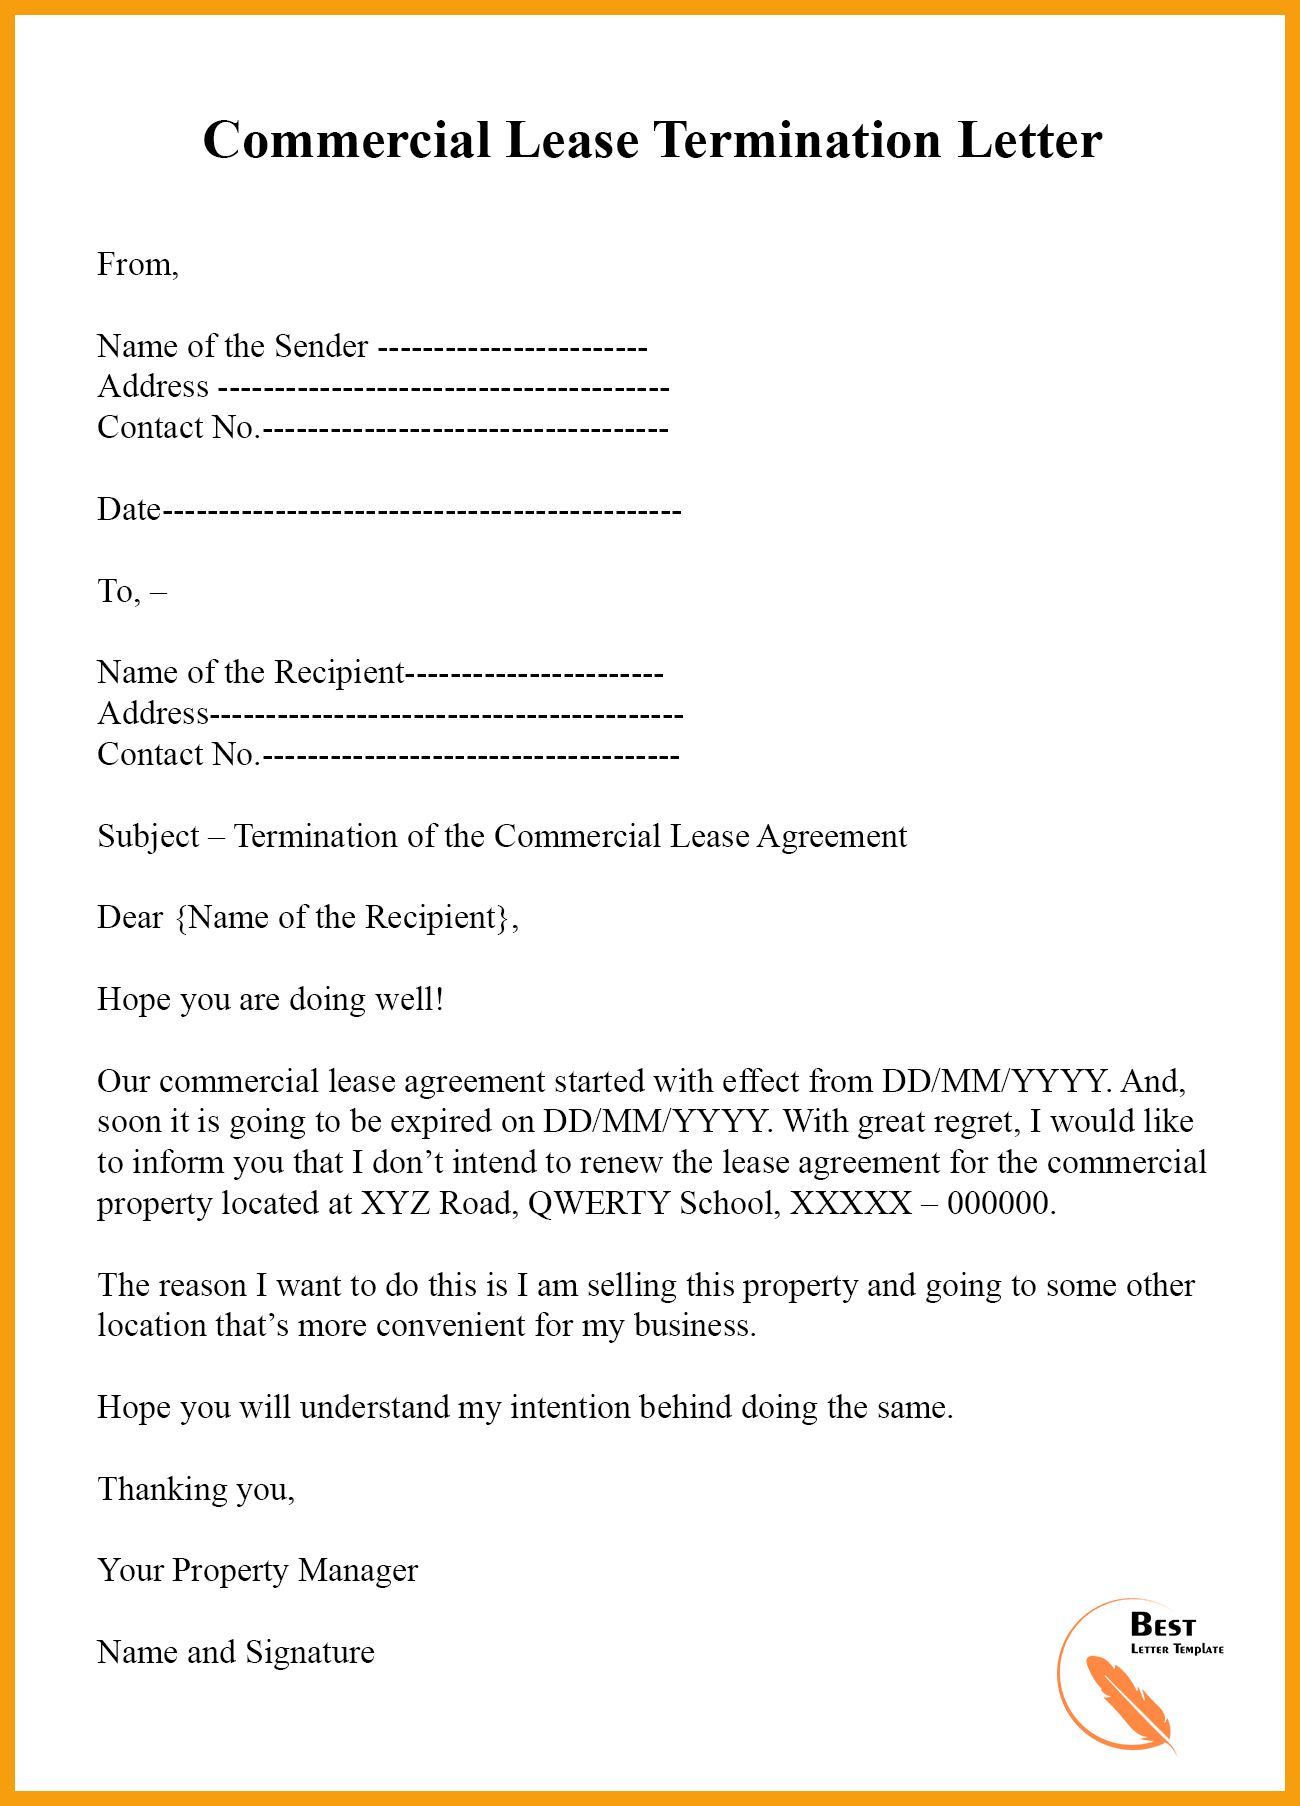 Sample Letter To Terminate Lease Agreement from bestlettertemplate.com